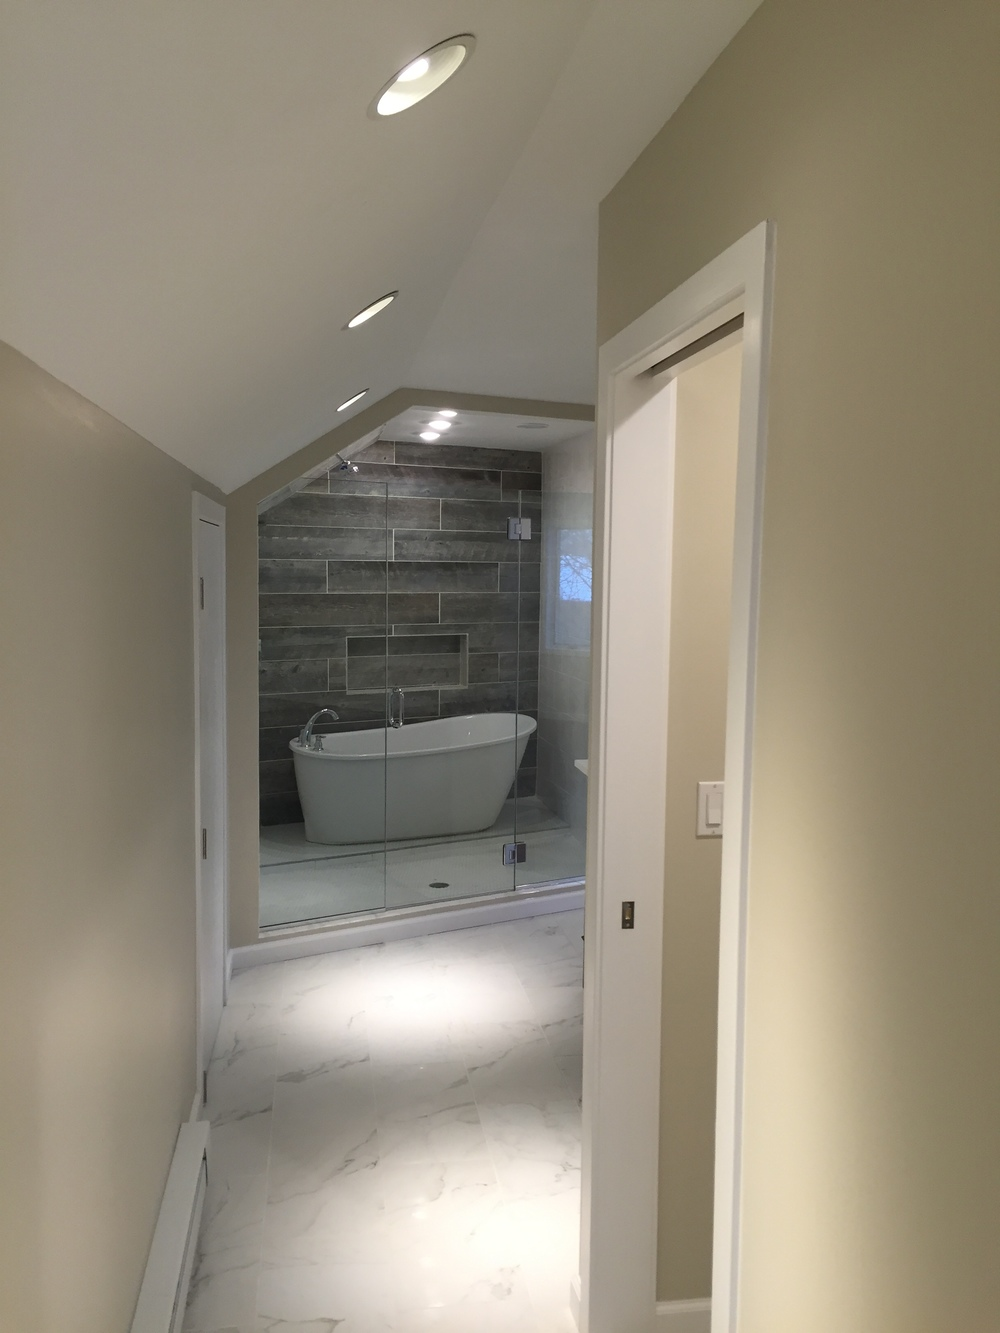 Bathroom Remodel in Waterford CT | Shaw Remodeling